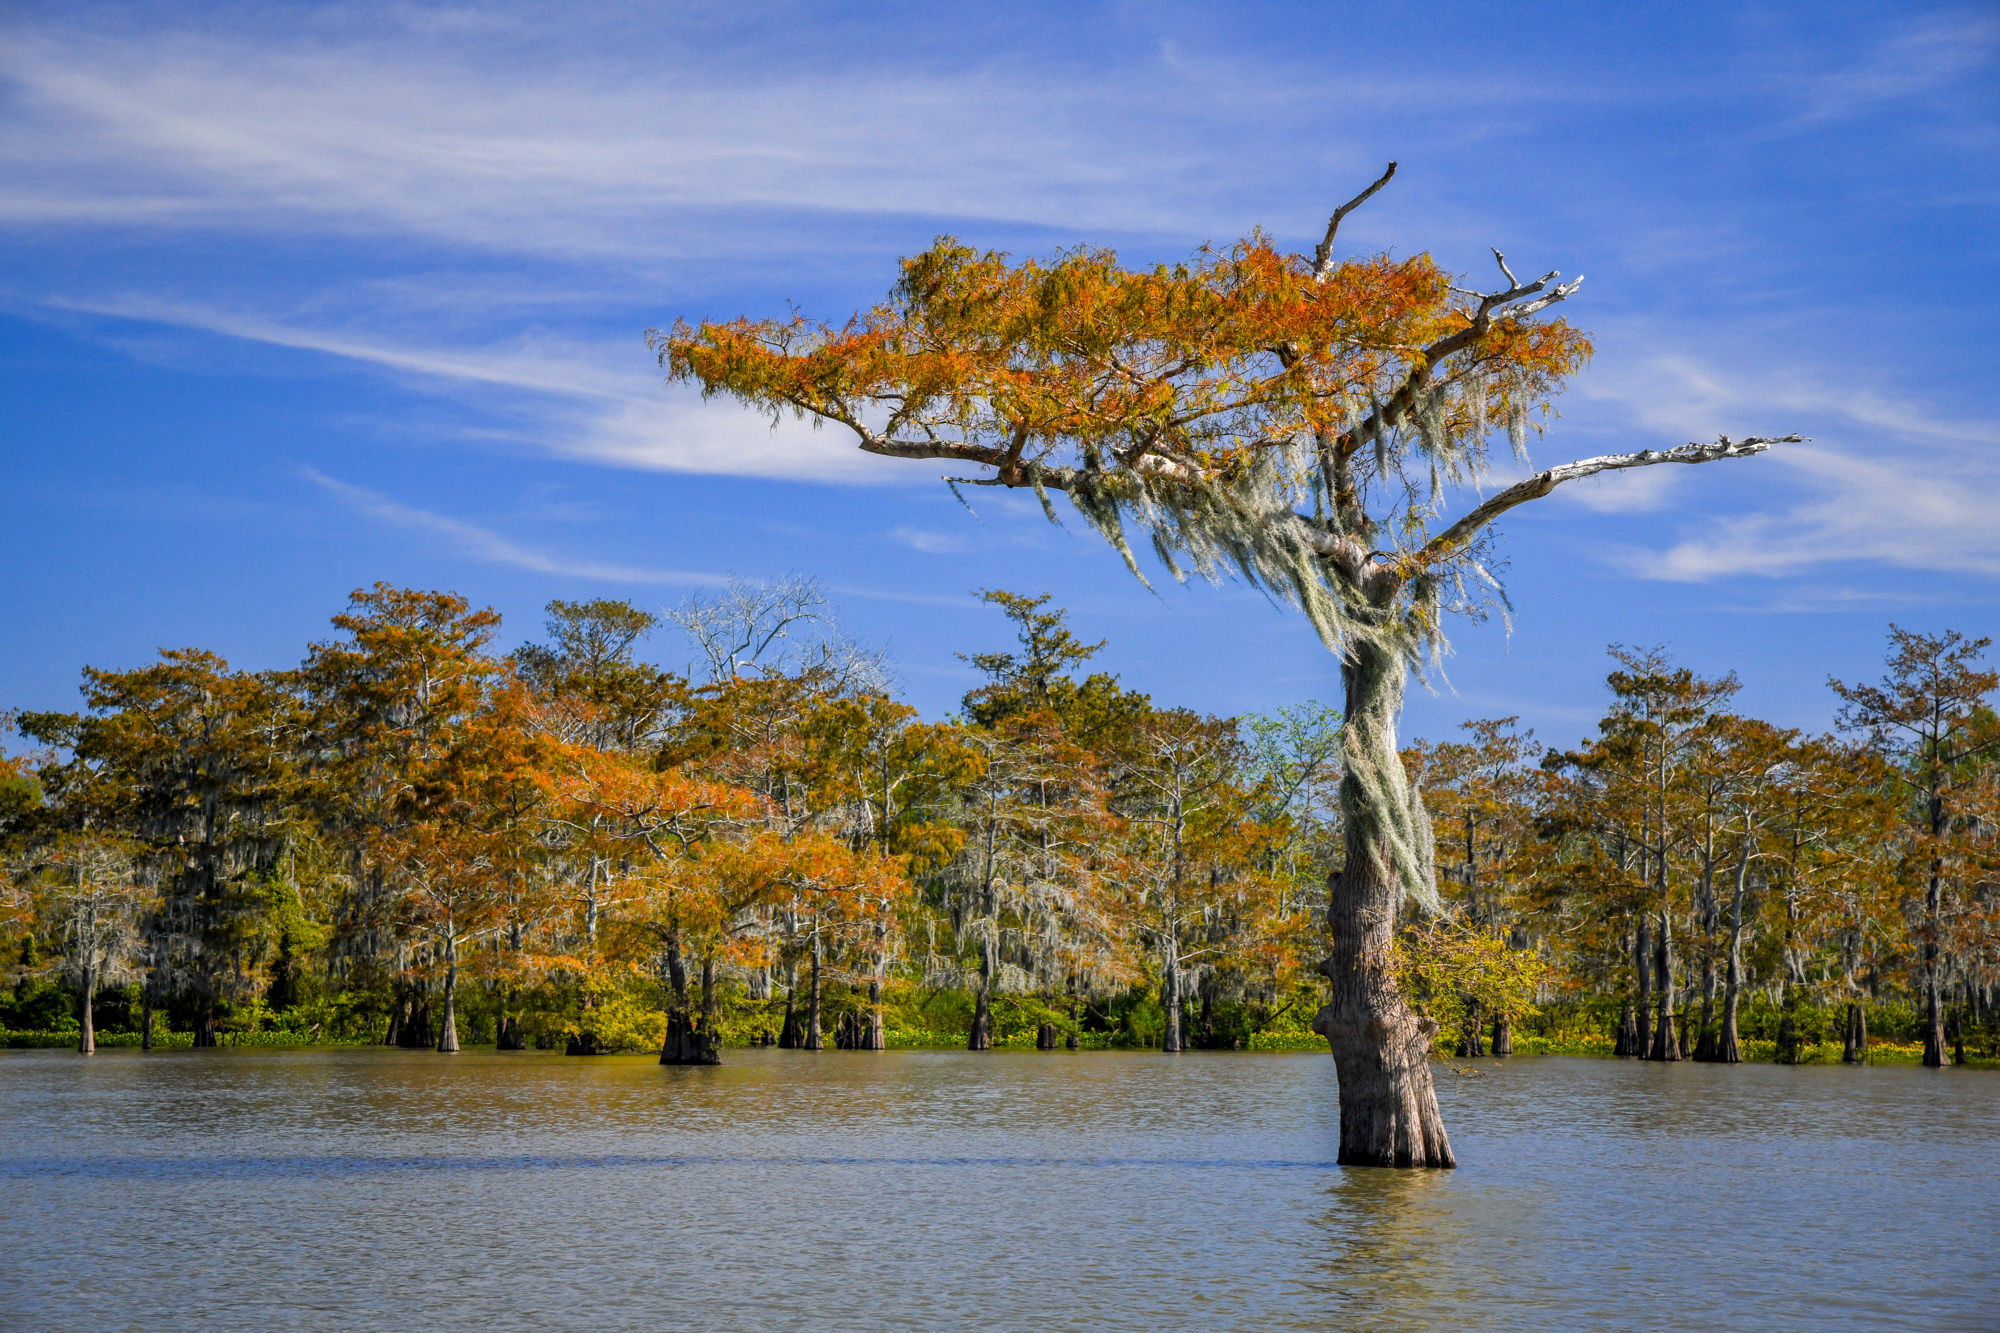 Andy crawford photography  8 spirit of the swamp 24x36 canvas gallery wrap ready to hang a4ko4a